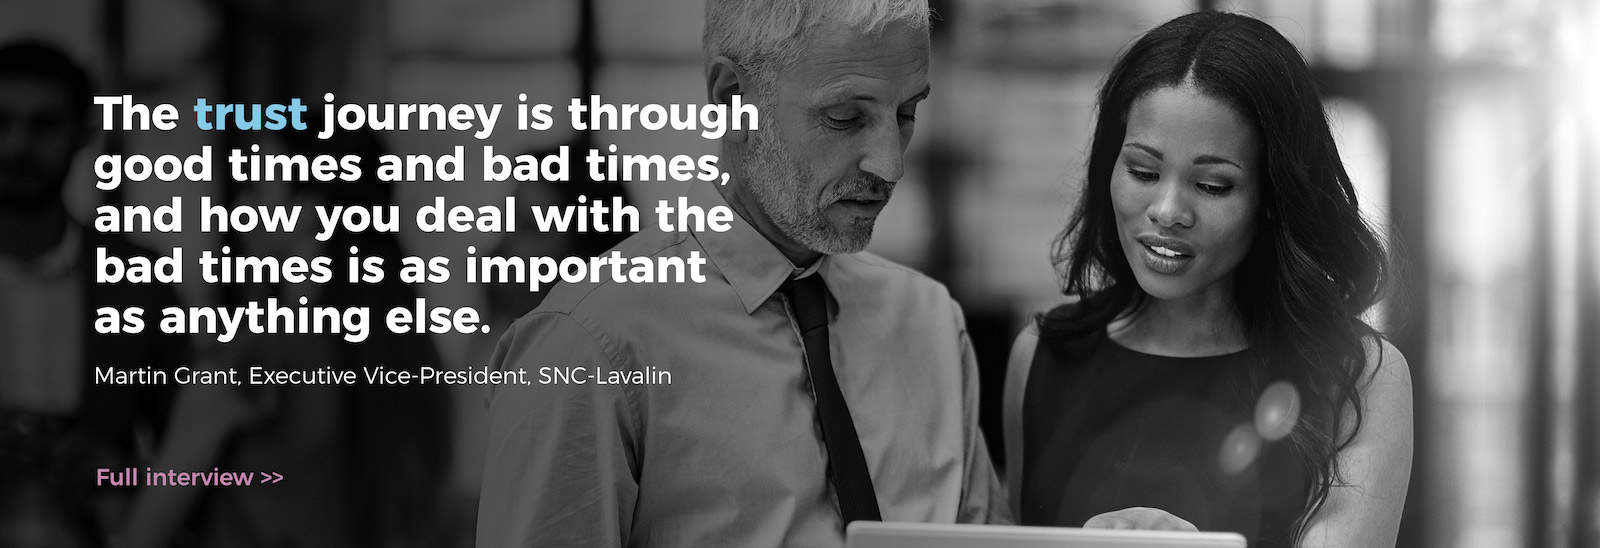 The trust journey is through good times and bad times, and how you deal with the bad times is as important as anything else. Martin Grant, Executive-Vice President, SNC Lavalin